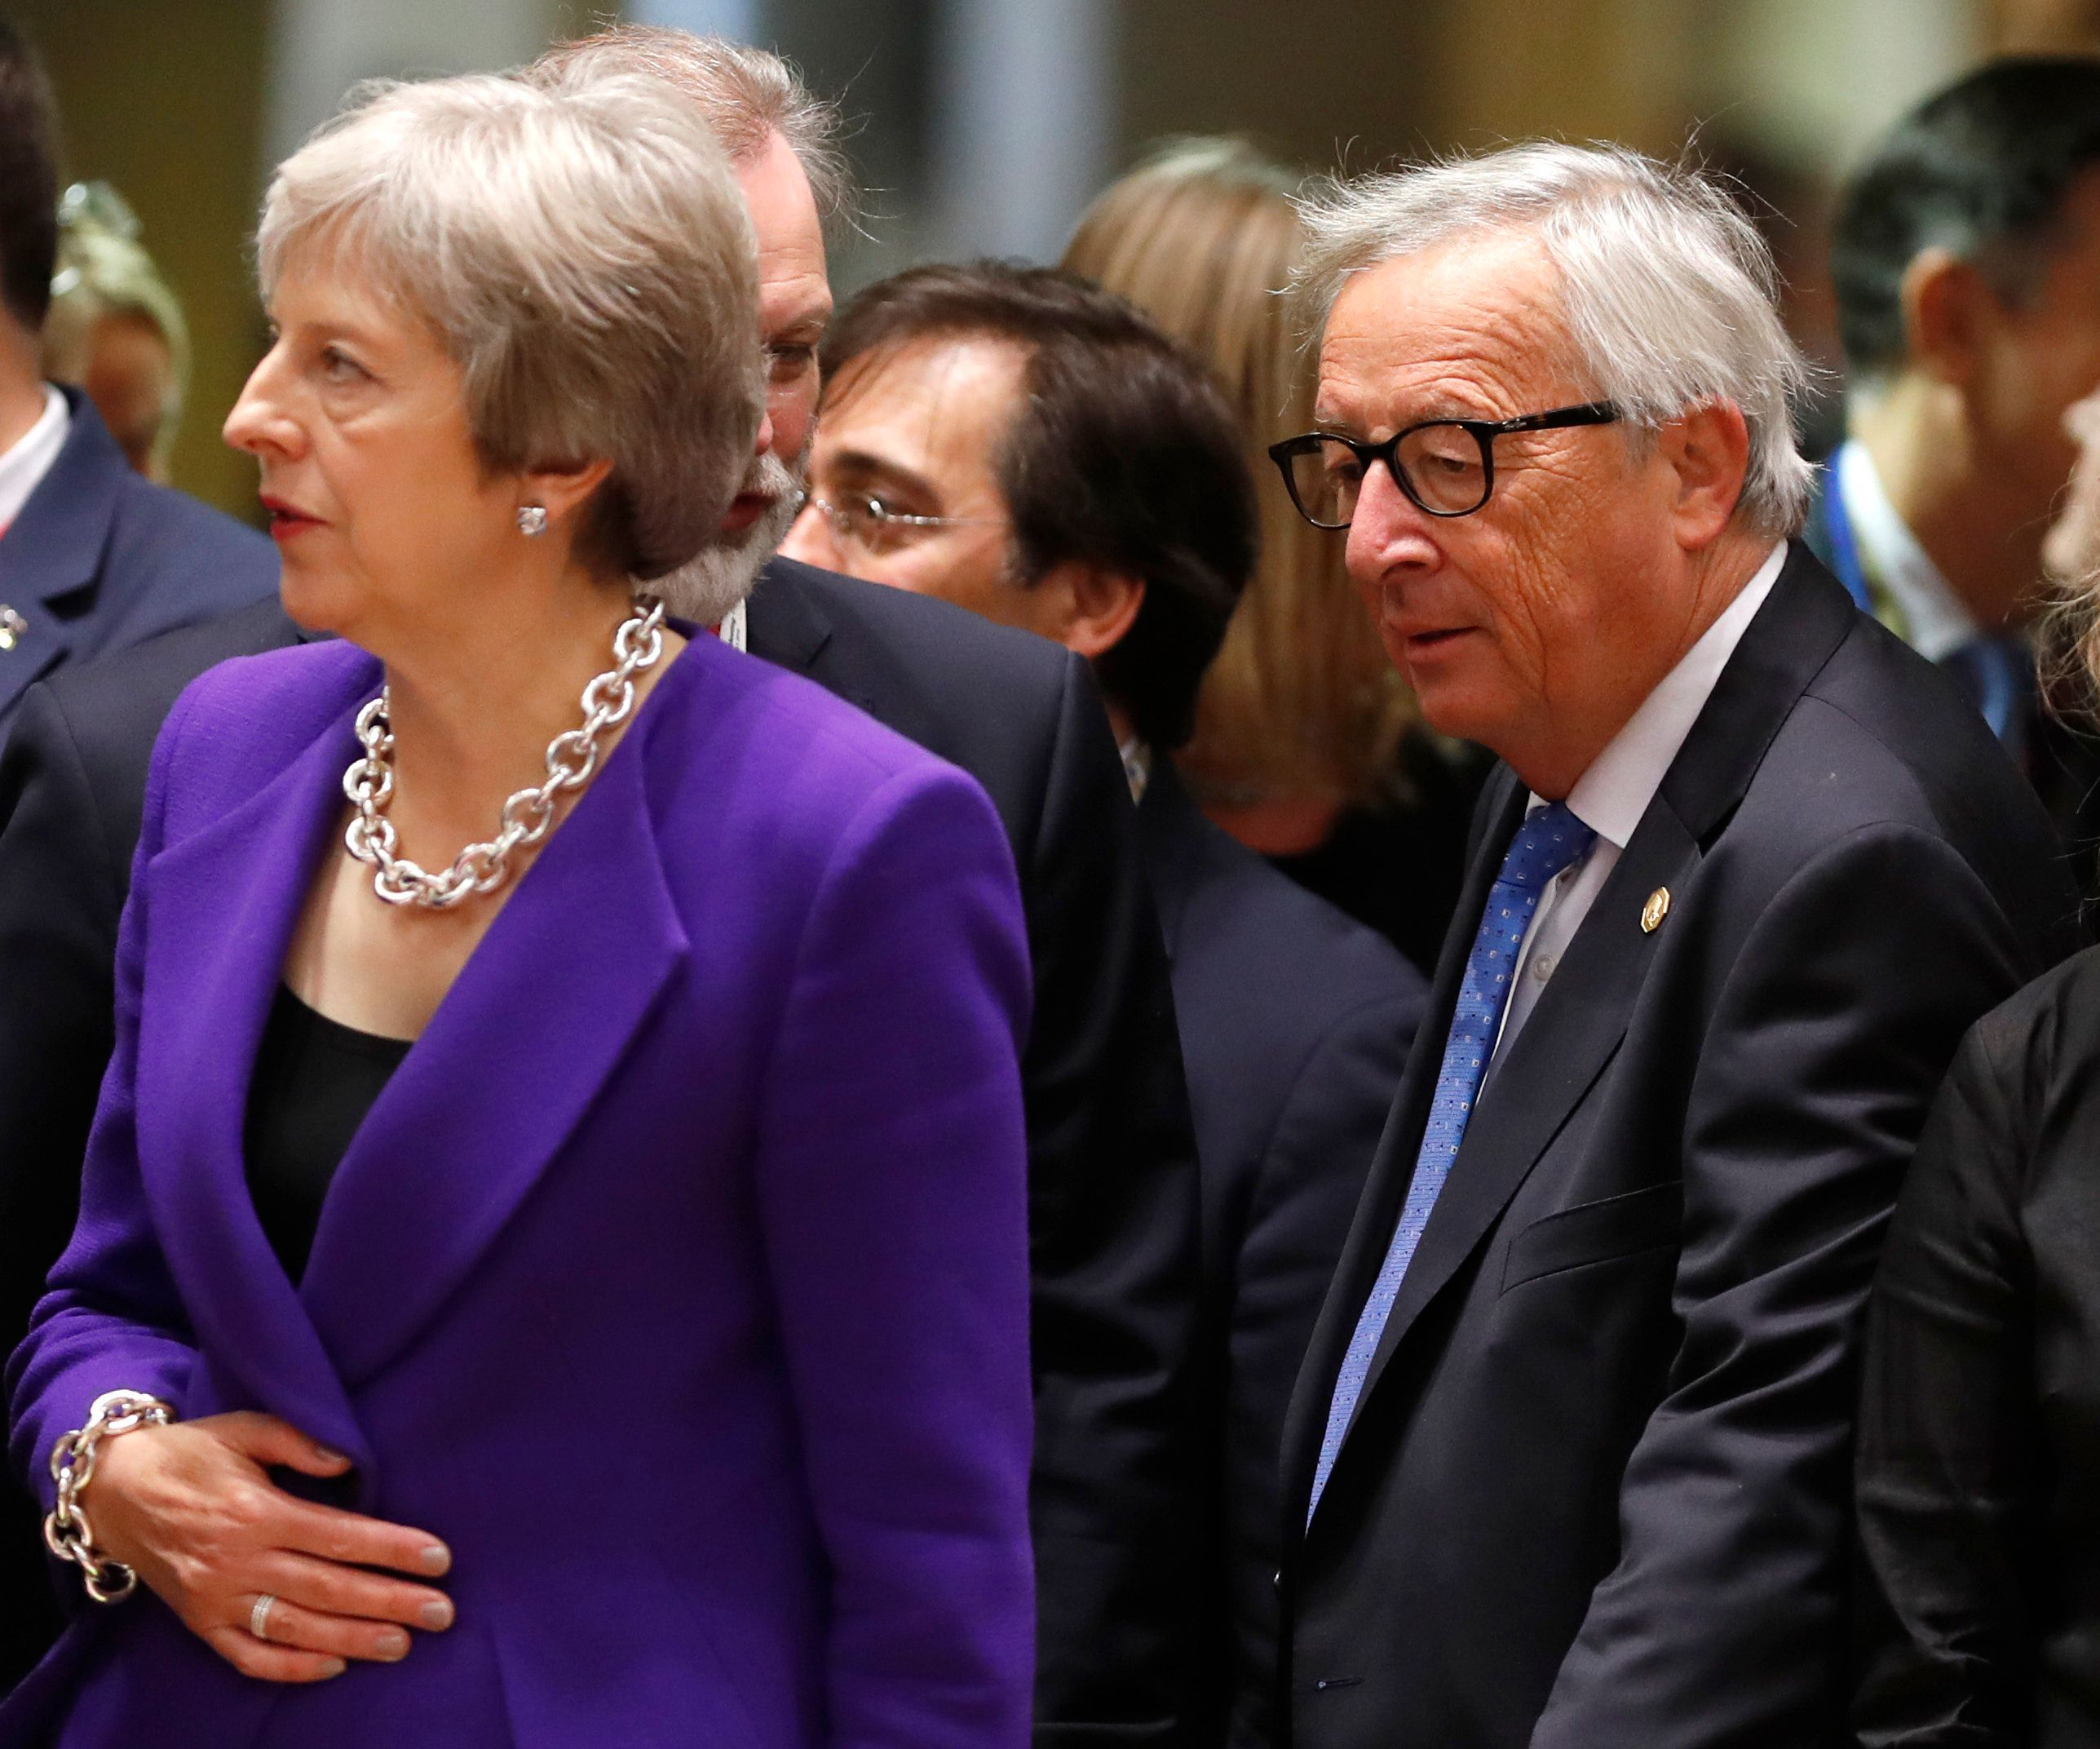 May's Brexit Deal Suffers Major Setback After EU 'Rejects' UK Arbitration